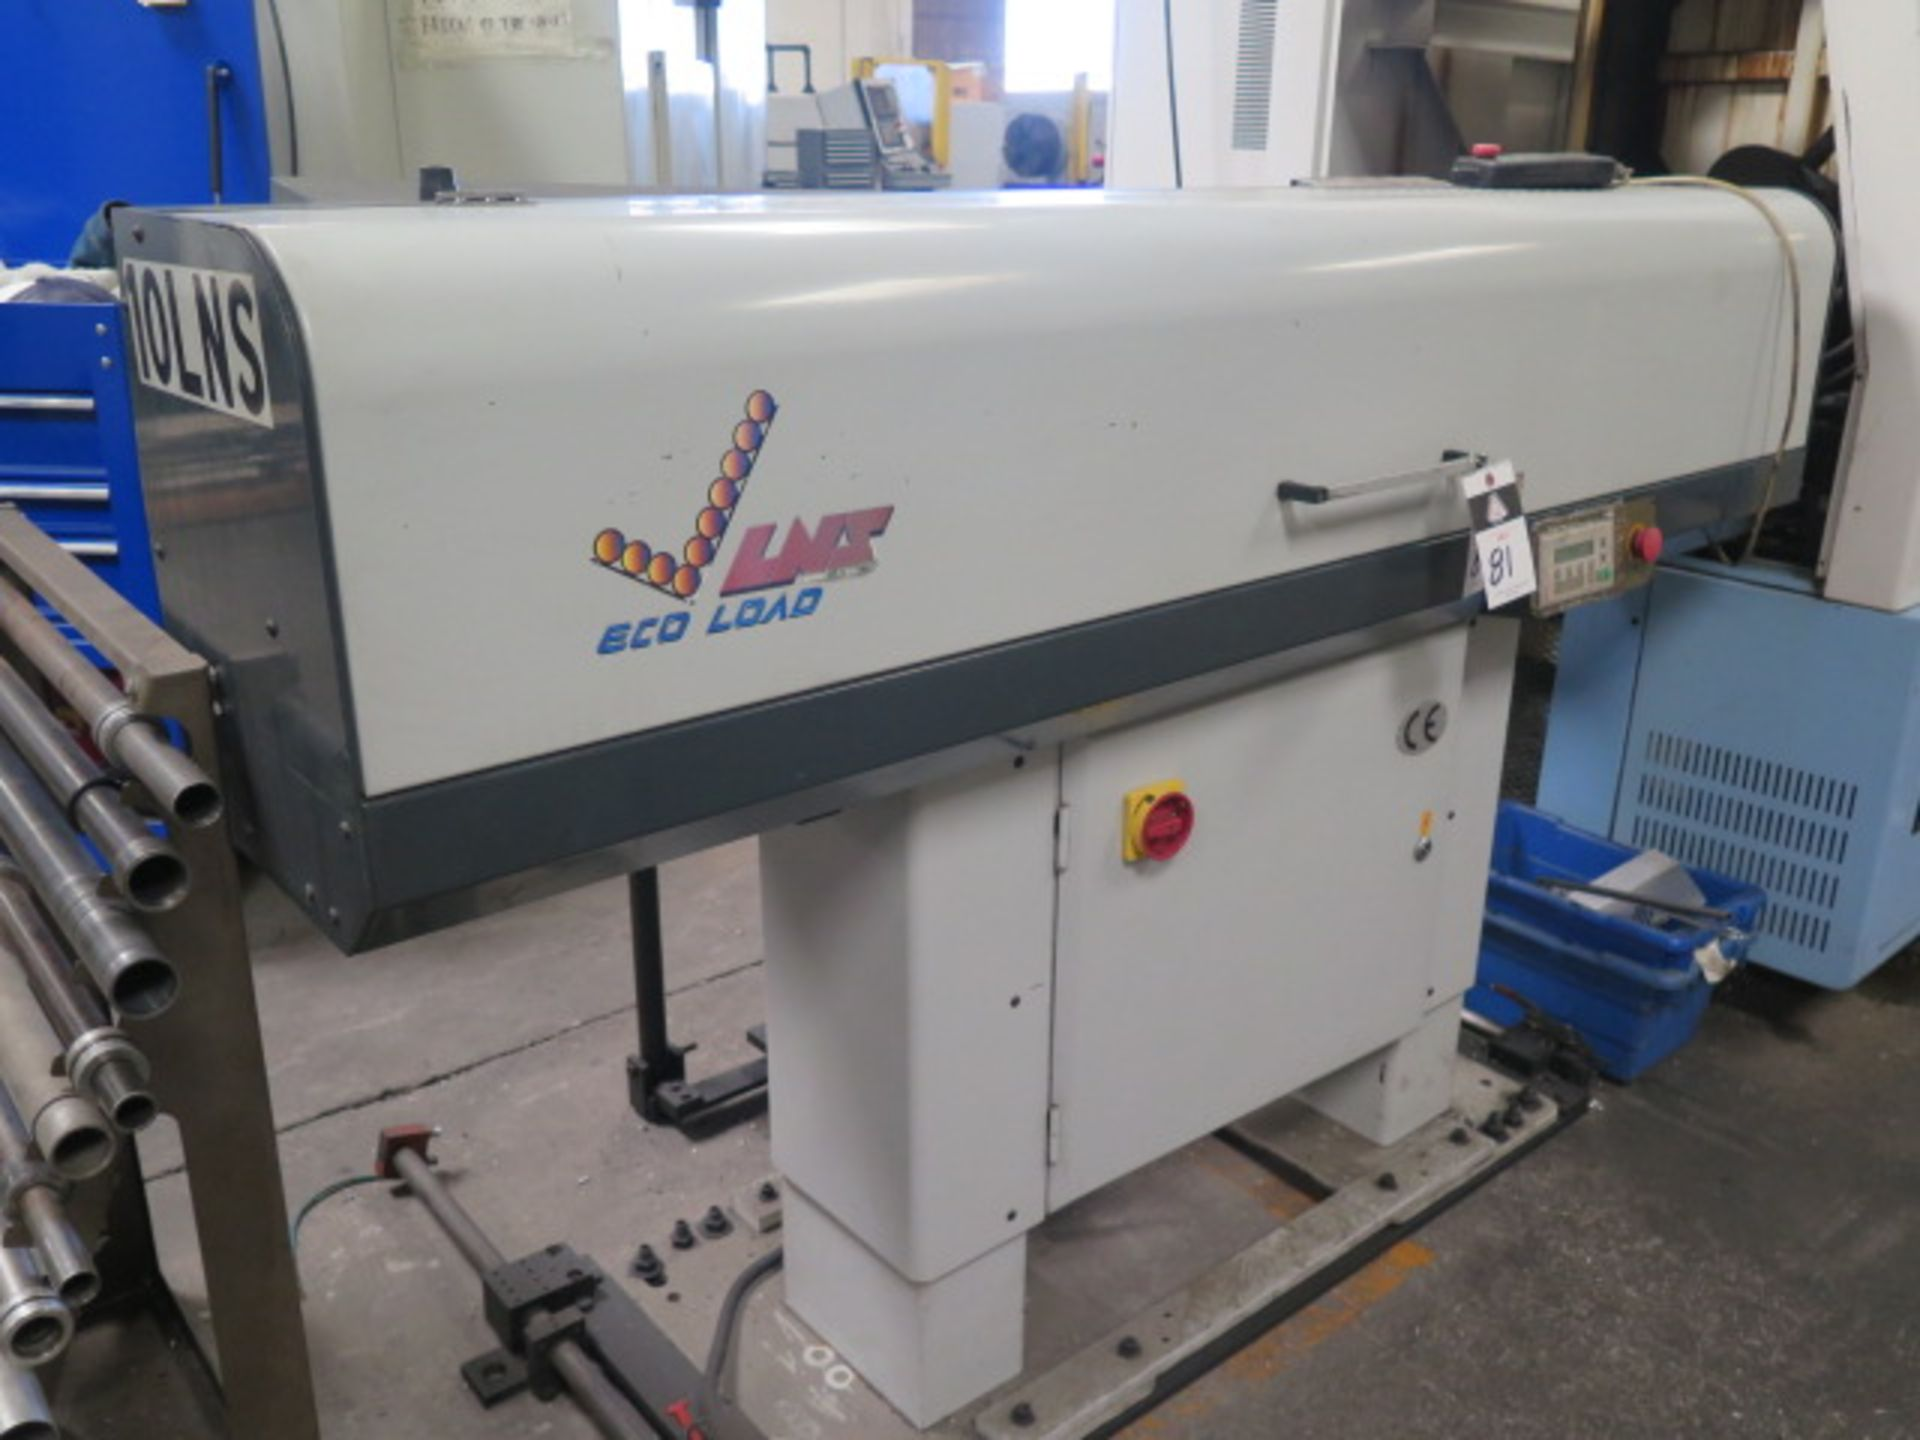 LNS Eco Load Automatic Bar Loader / Feeder (SOLD AS-IS - NO WARRANTY) - Image 2 of 5